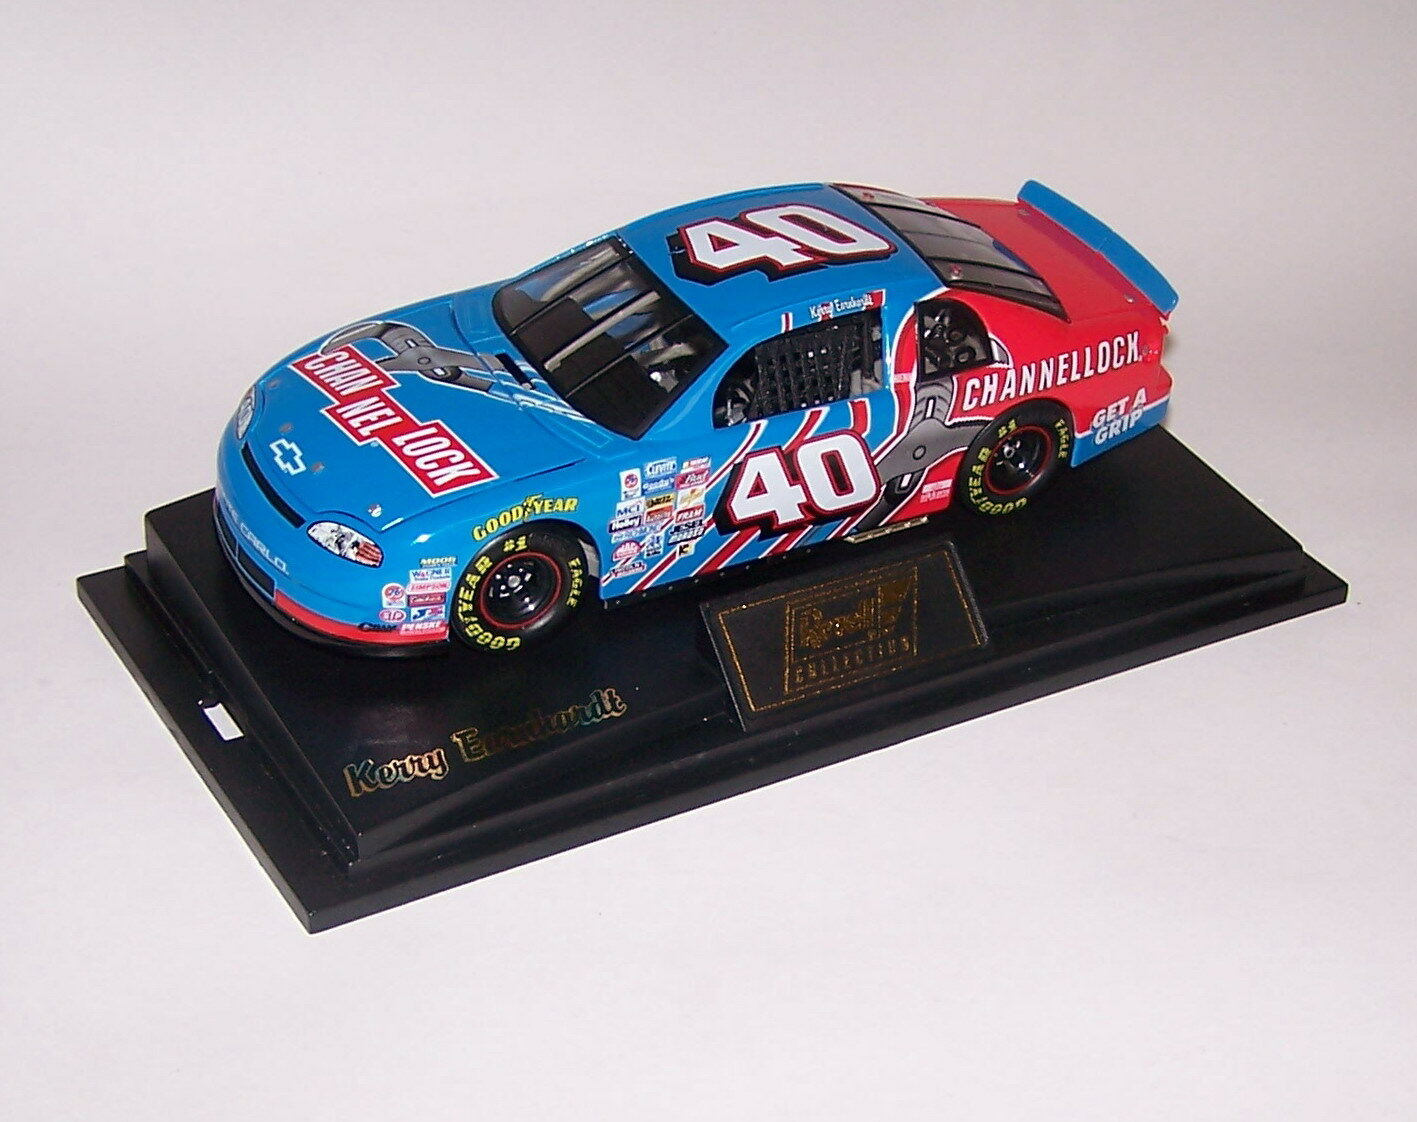 Kerry Earnhardt 1999 Channellock Chevy Monte Carlo 1 24 Escala